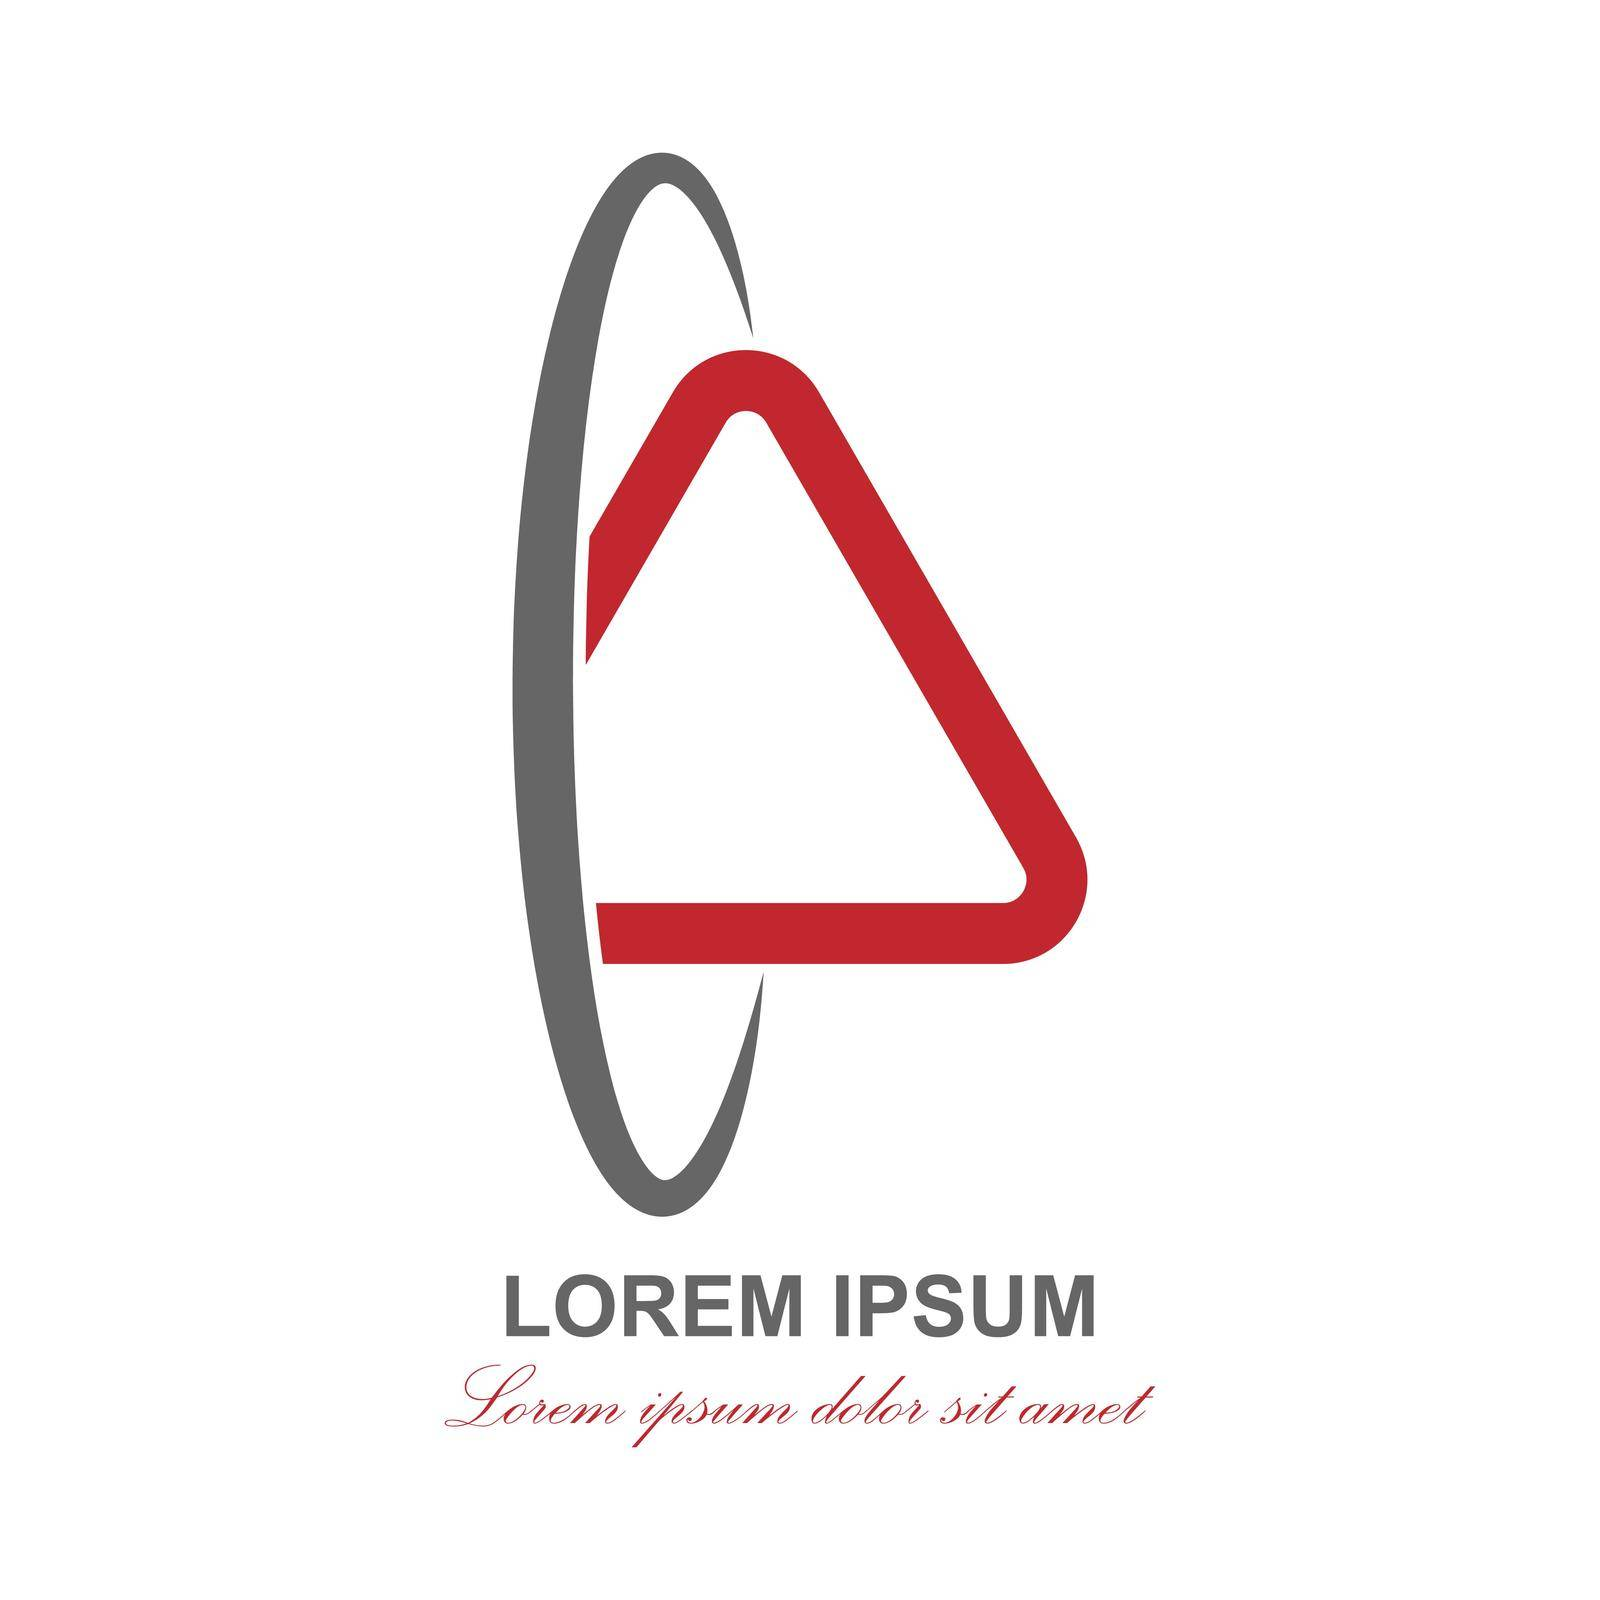 Abstract logo for business, company, social communications. Blank for a logo, brand, label by Grommik